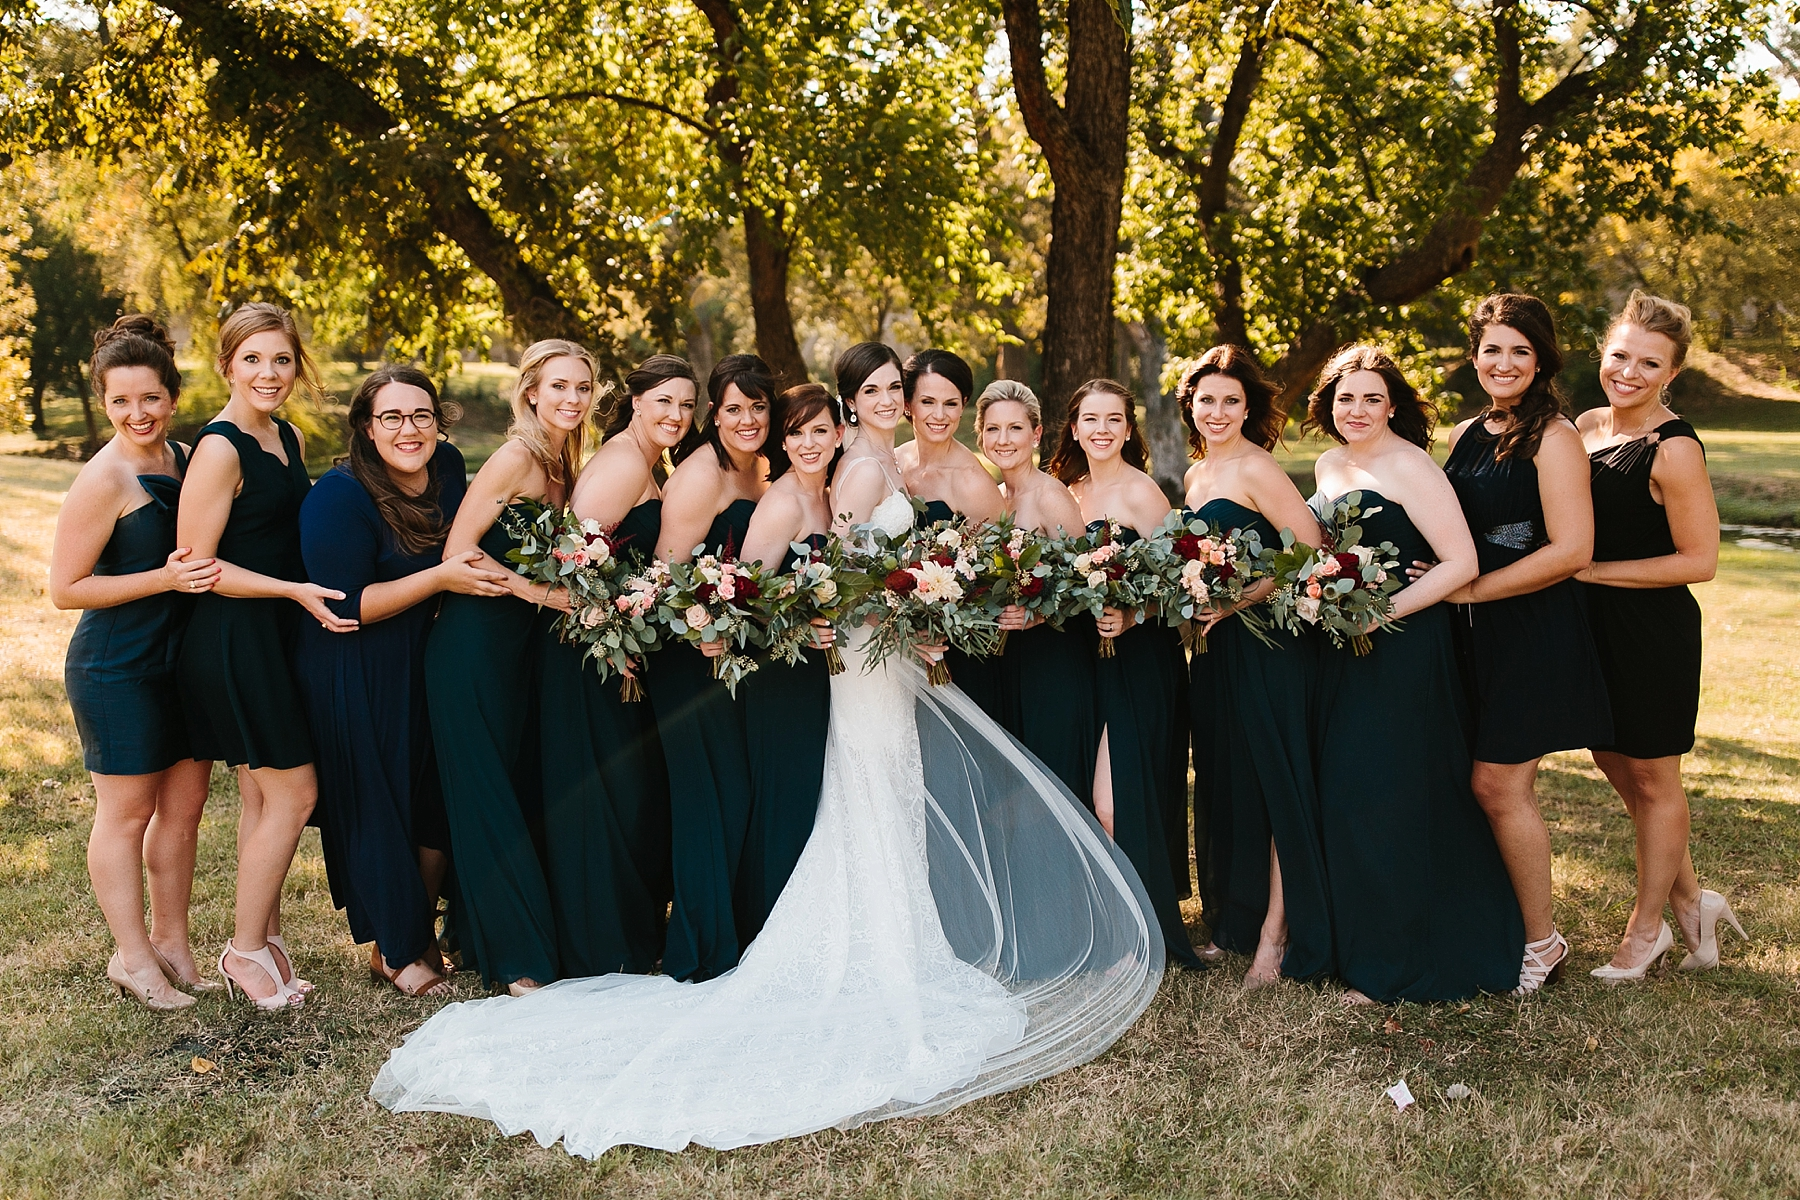 Emily + Caleb _ an elegant, intentional, industrial style wedding with navy + gold accents at 6500 in Dallas, TX by North Texas Wedding Photographer Rachel Meagan Photography _ 065